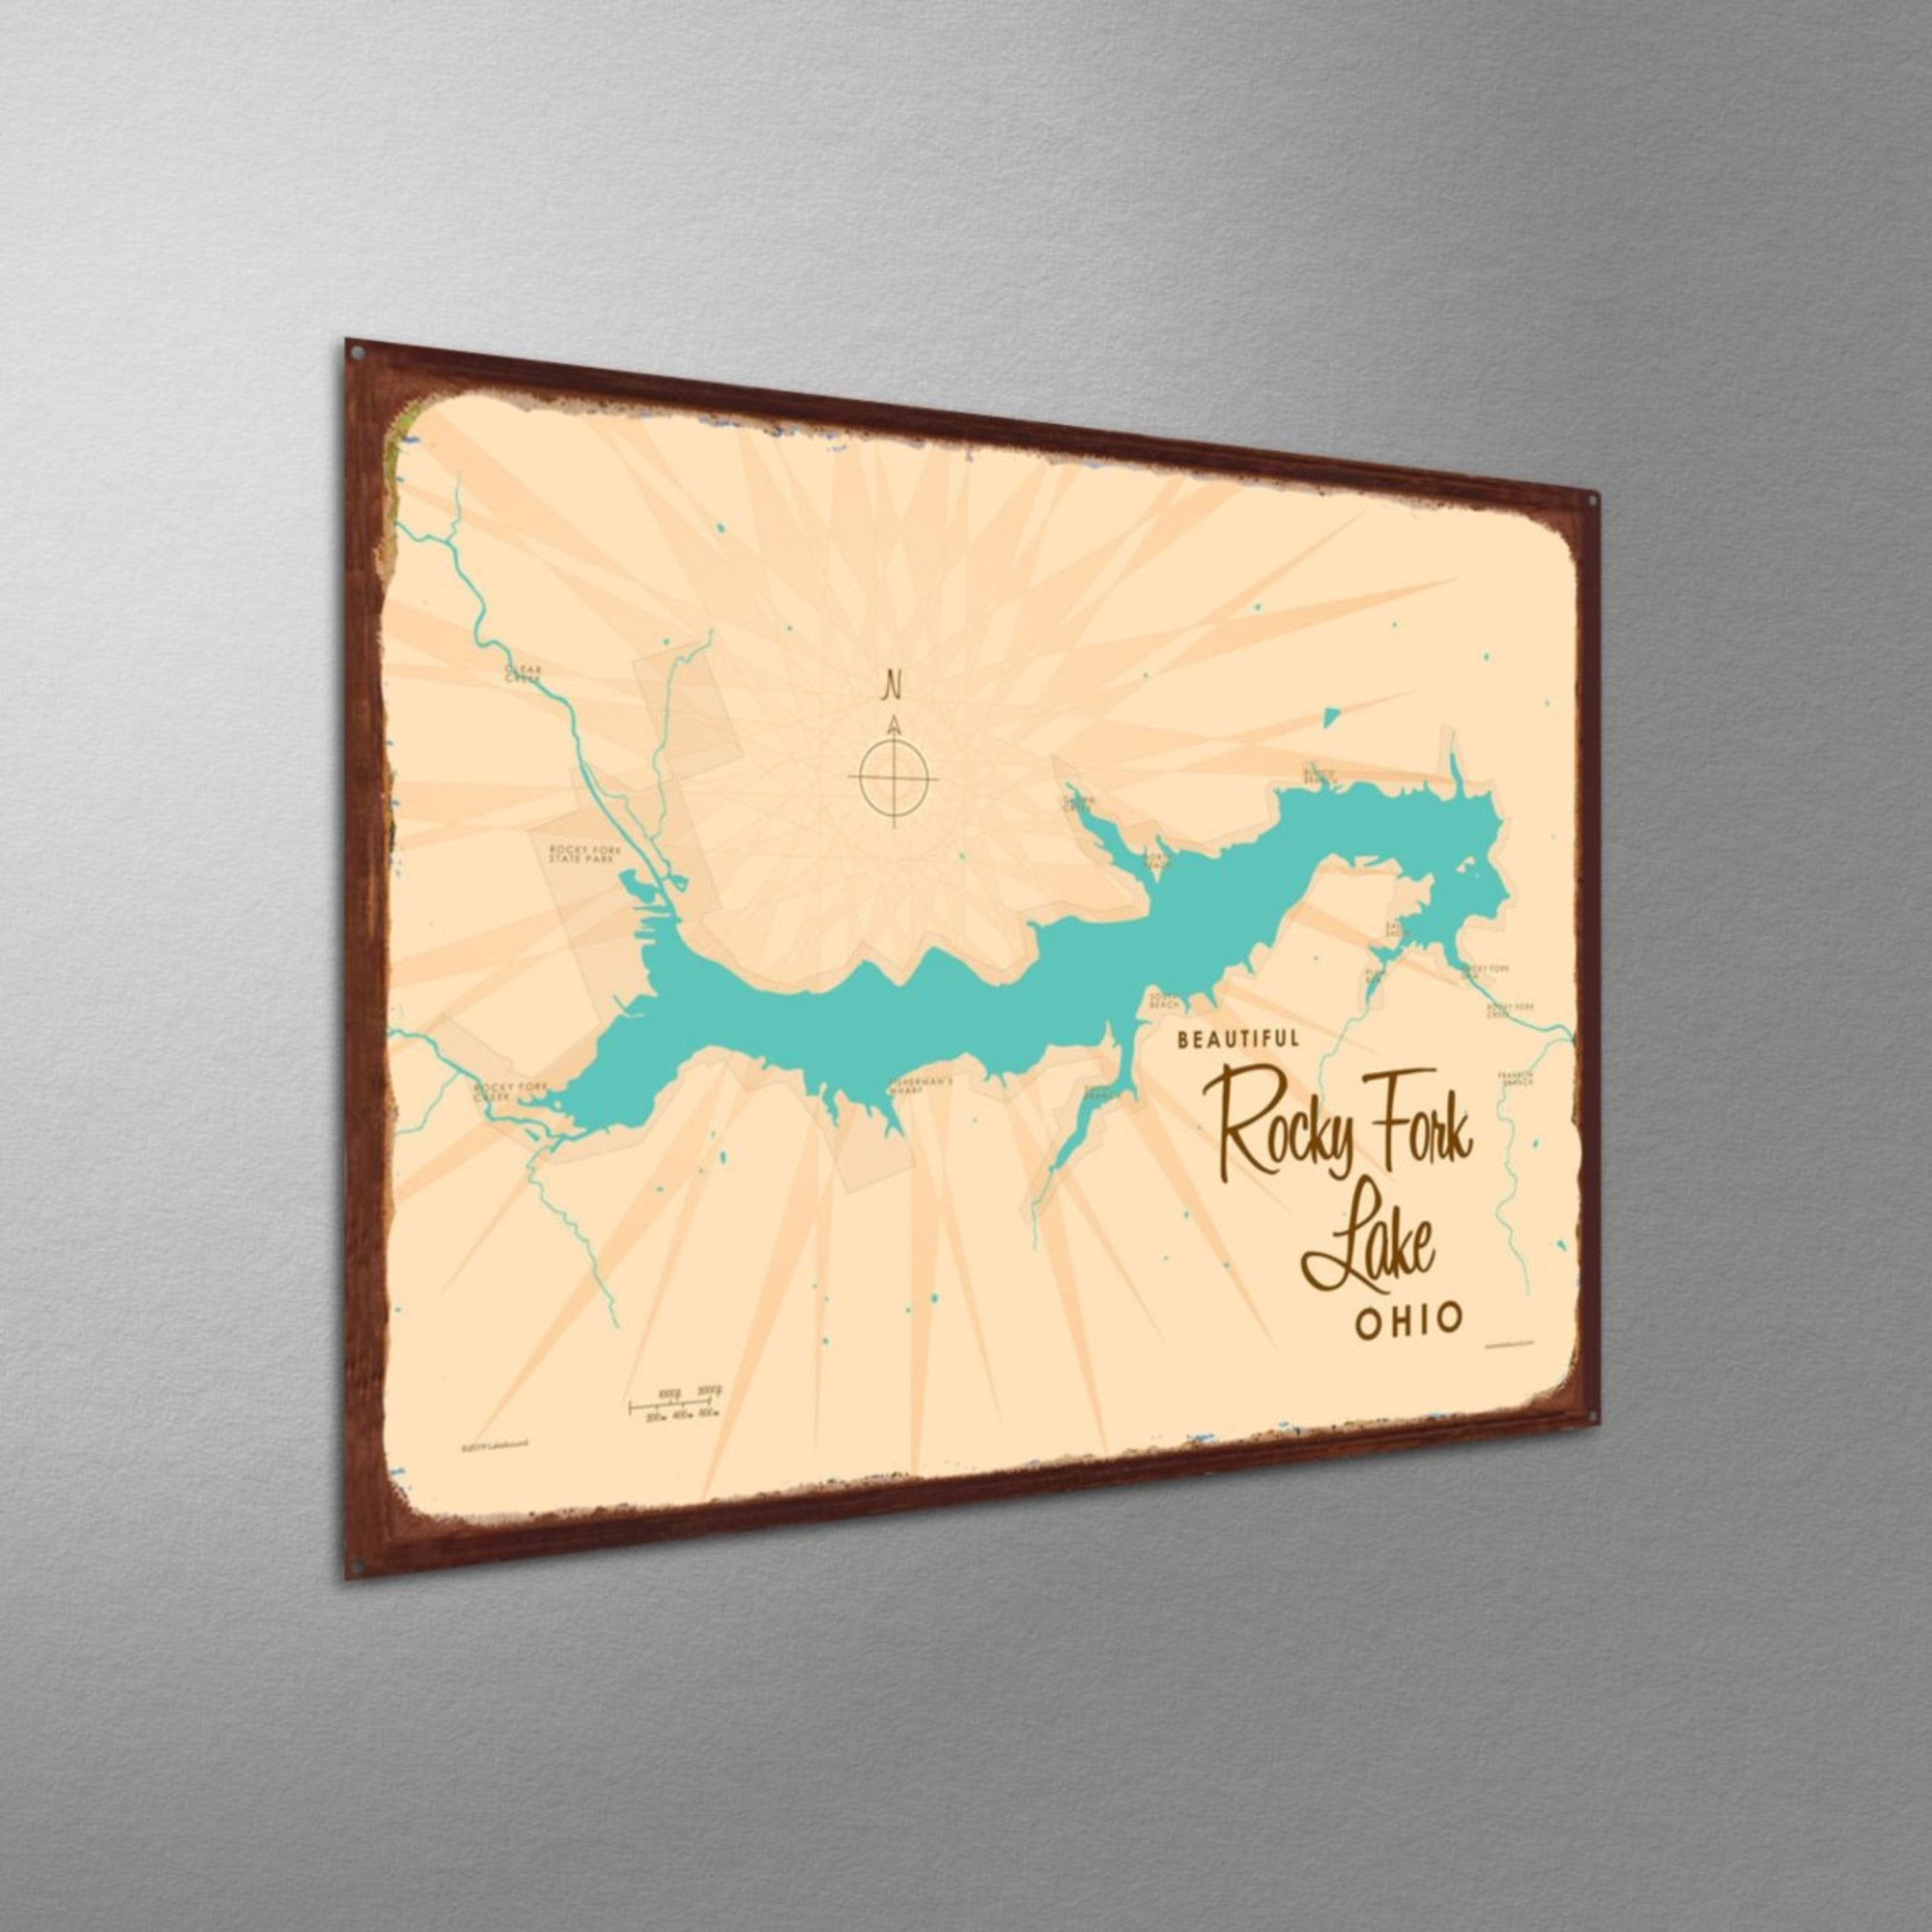 Rocky Fork Lake Ohio, Rustic Metal Sign Map Art